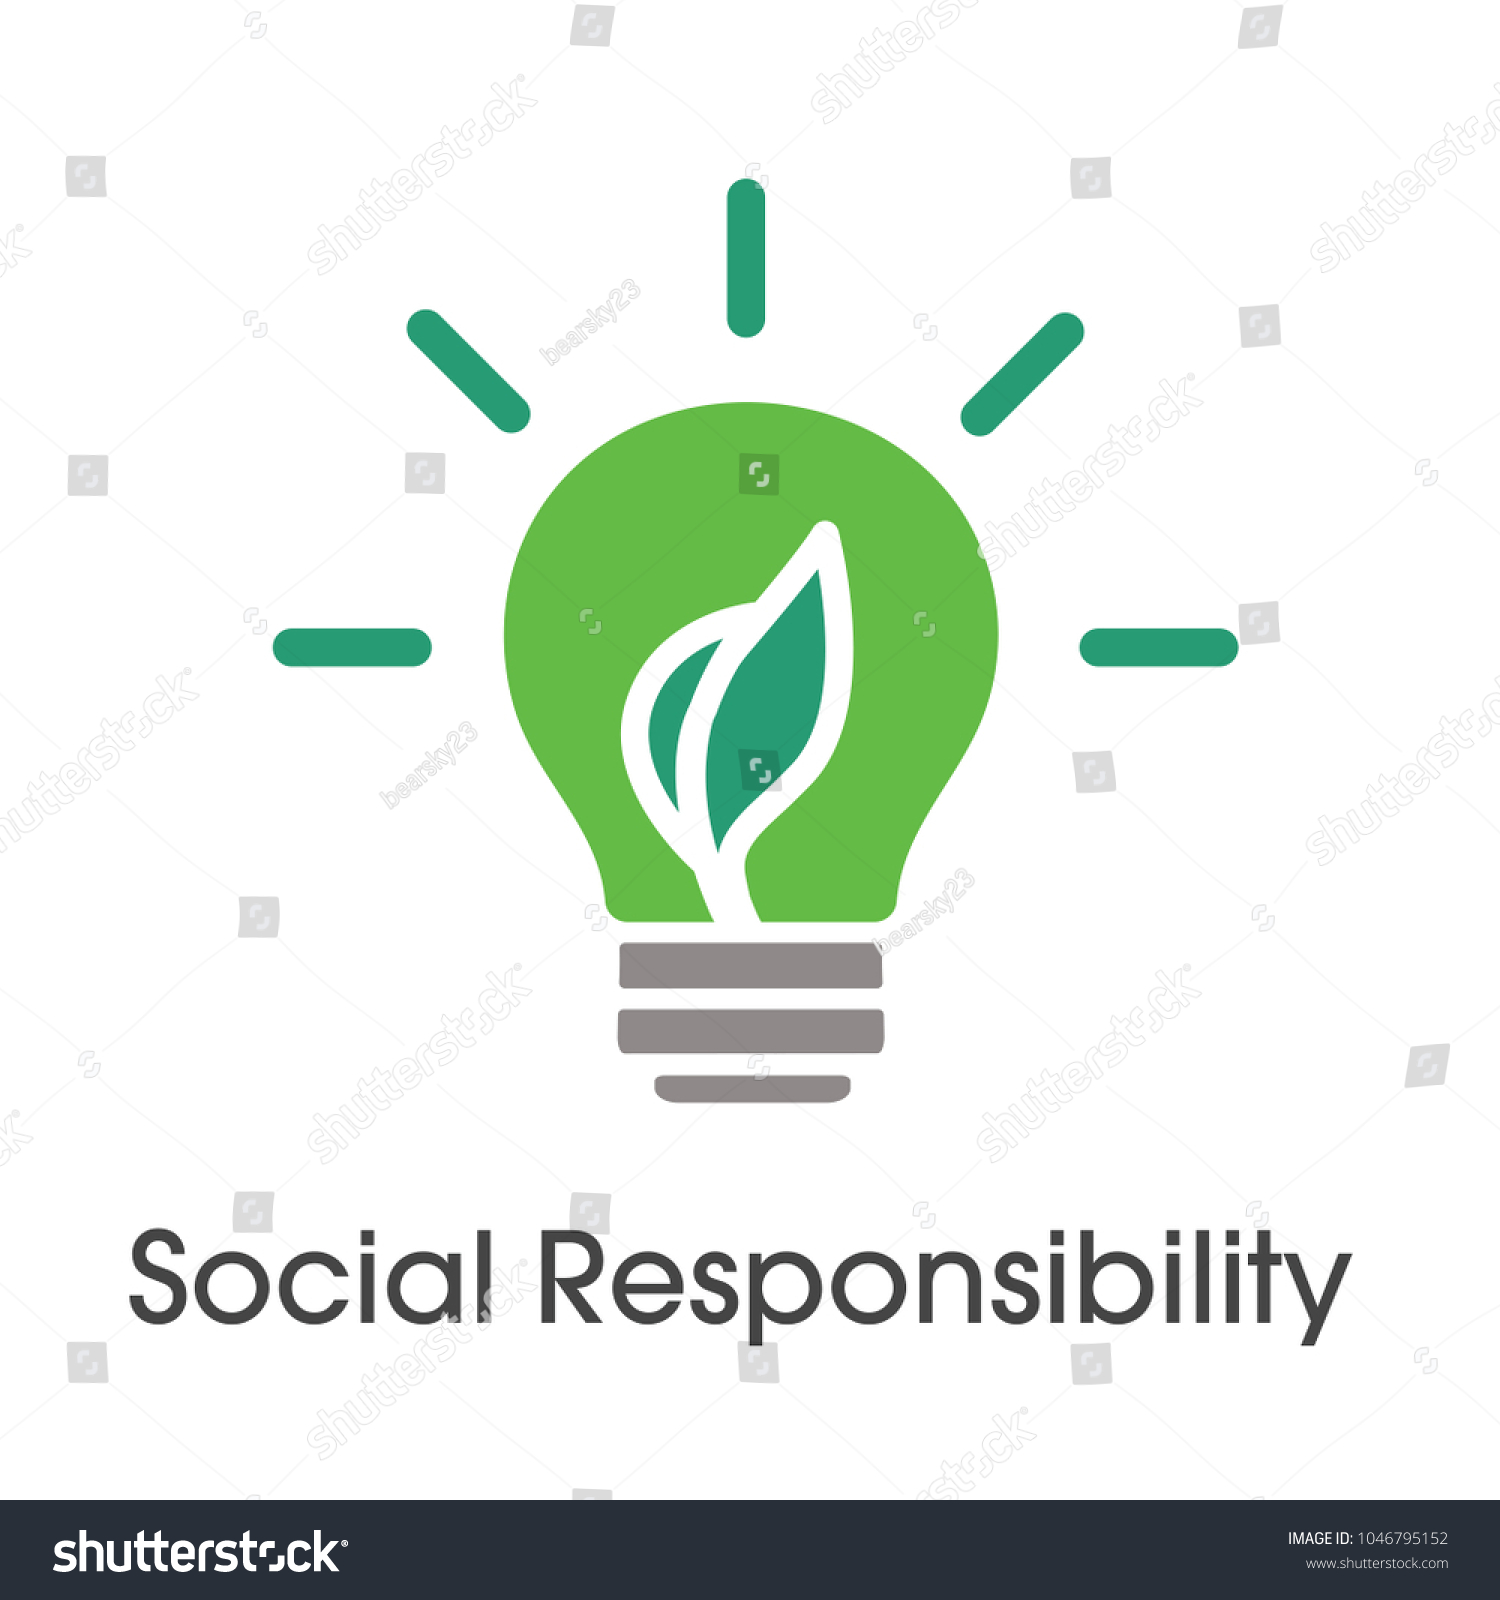 Social responsibility solid icon set honesty stock vector social responsibility solid icon set with honesty integrity collaboration etc biocorpaavc Image collections